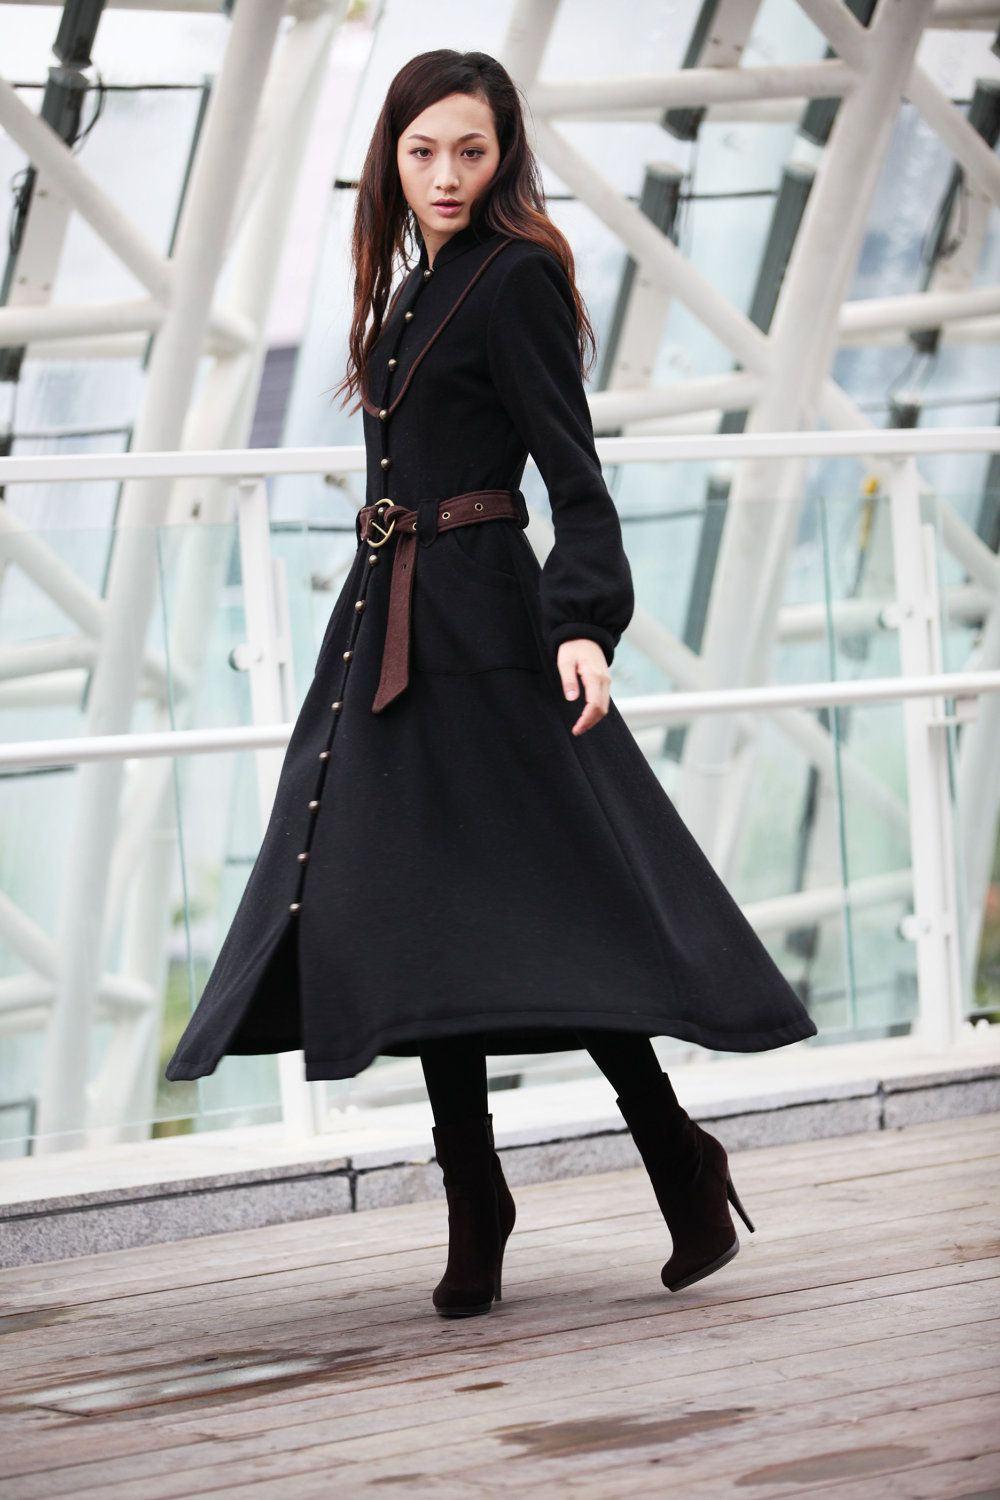 17 Best images about Coats on Pinterest | Coats Christian dior